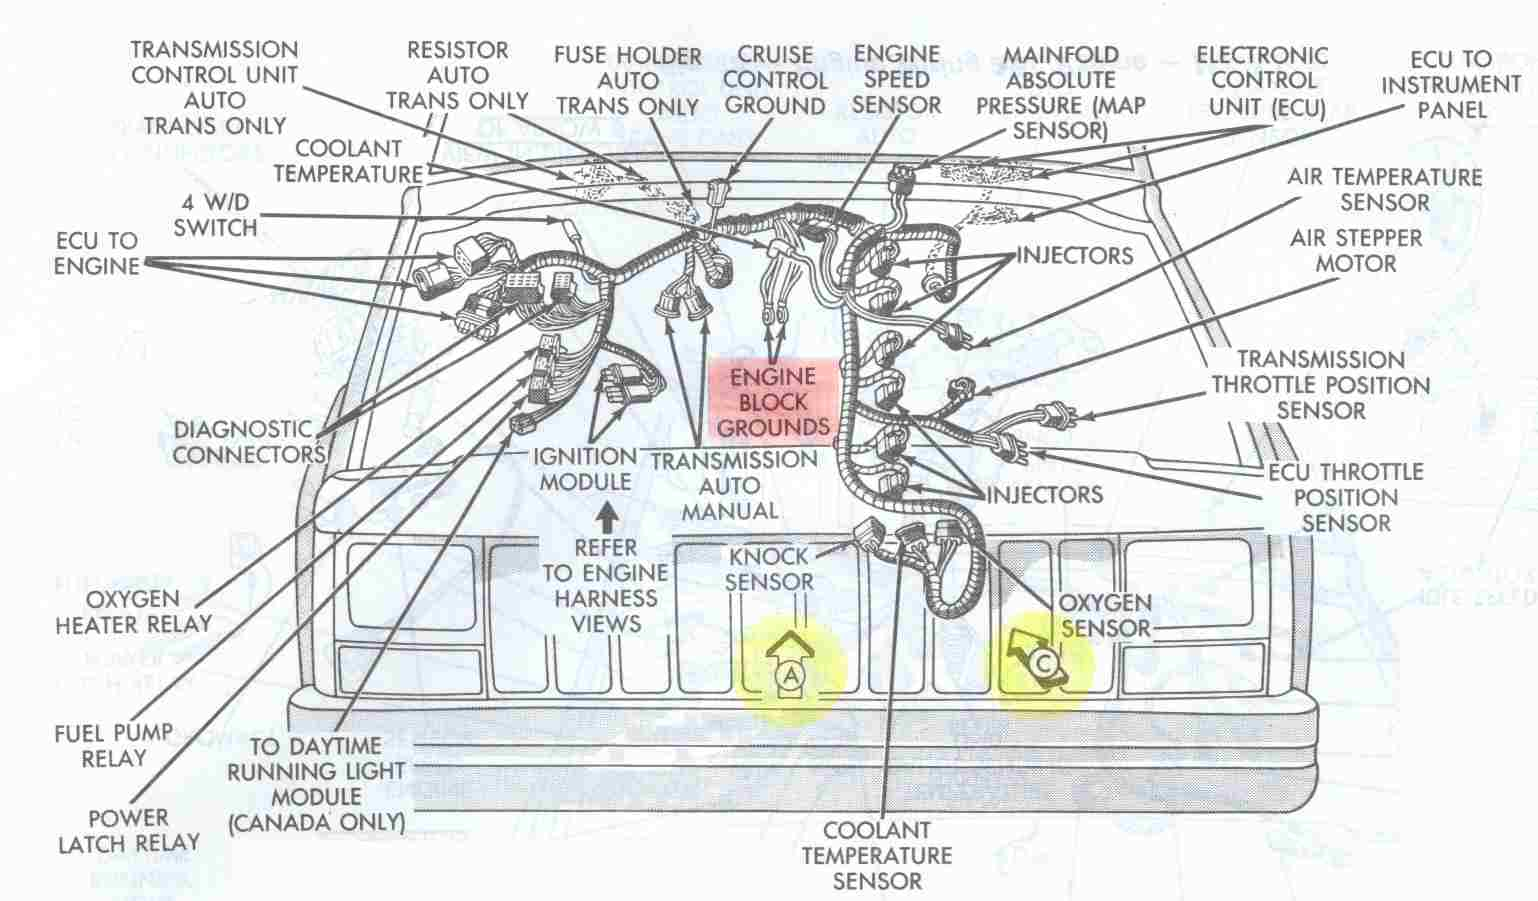 Electrical_Engine_Ground_Points_Overview jeep cherokee electrical diagnosing erratic behavior of engine 2001 jeep cherokee wiring harness at nearapp.co